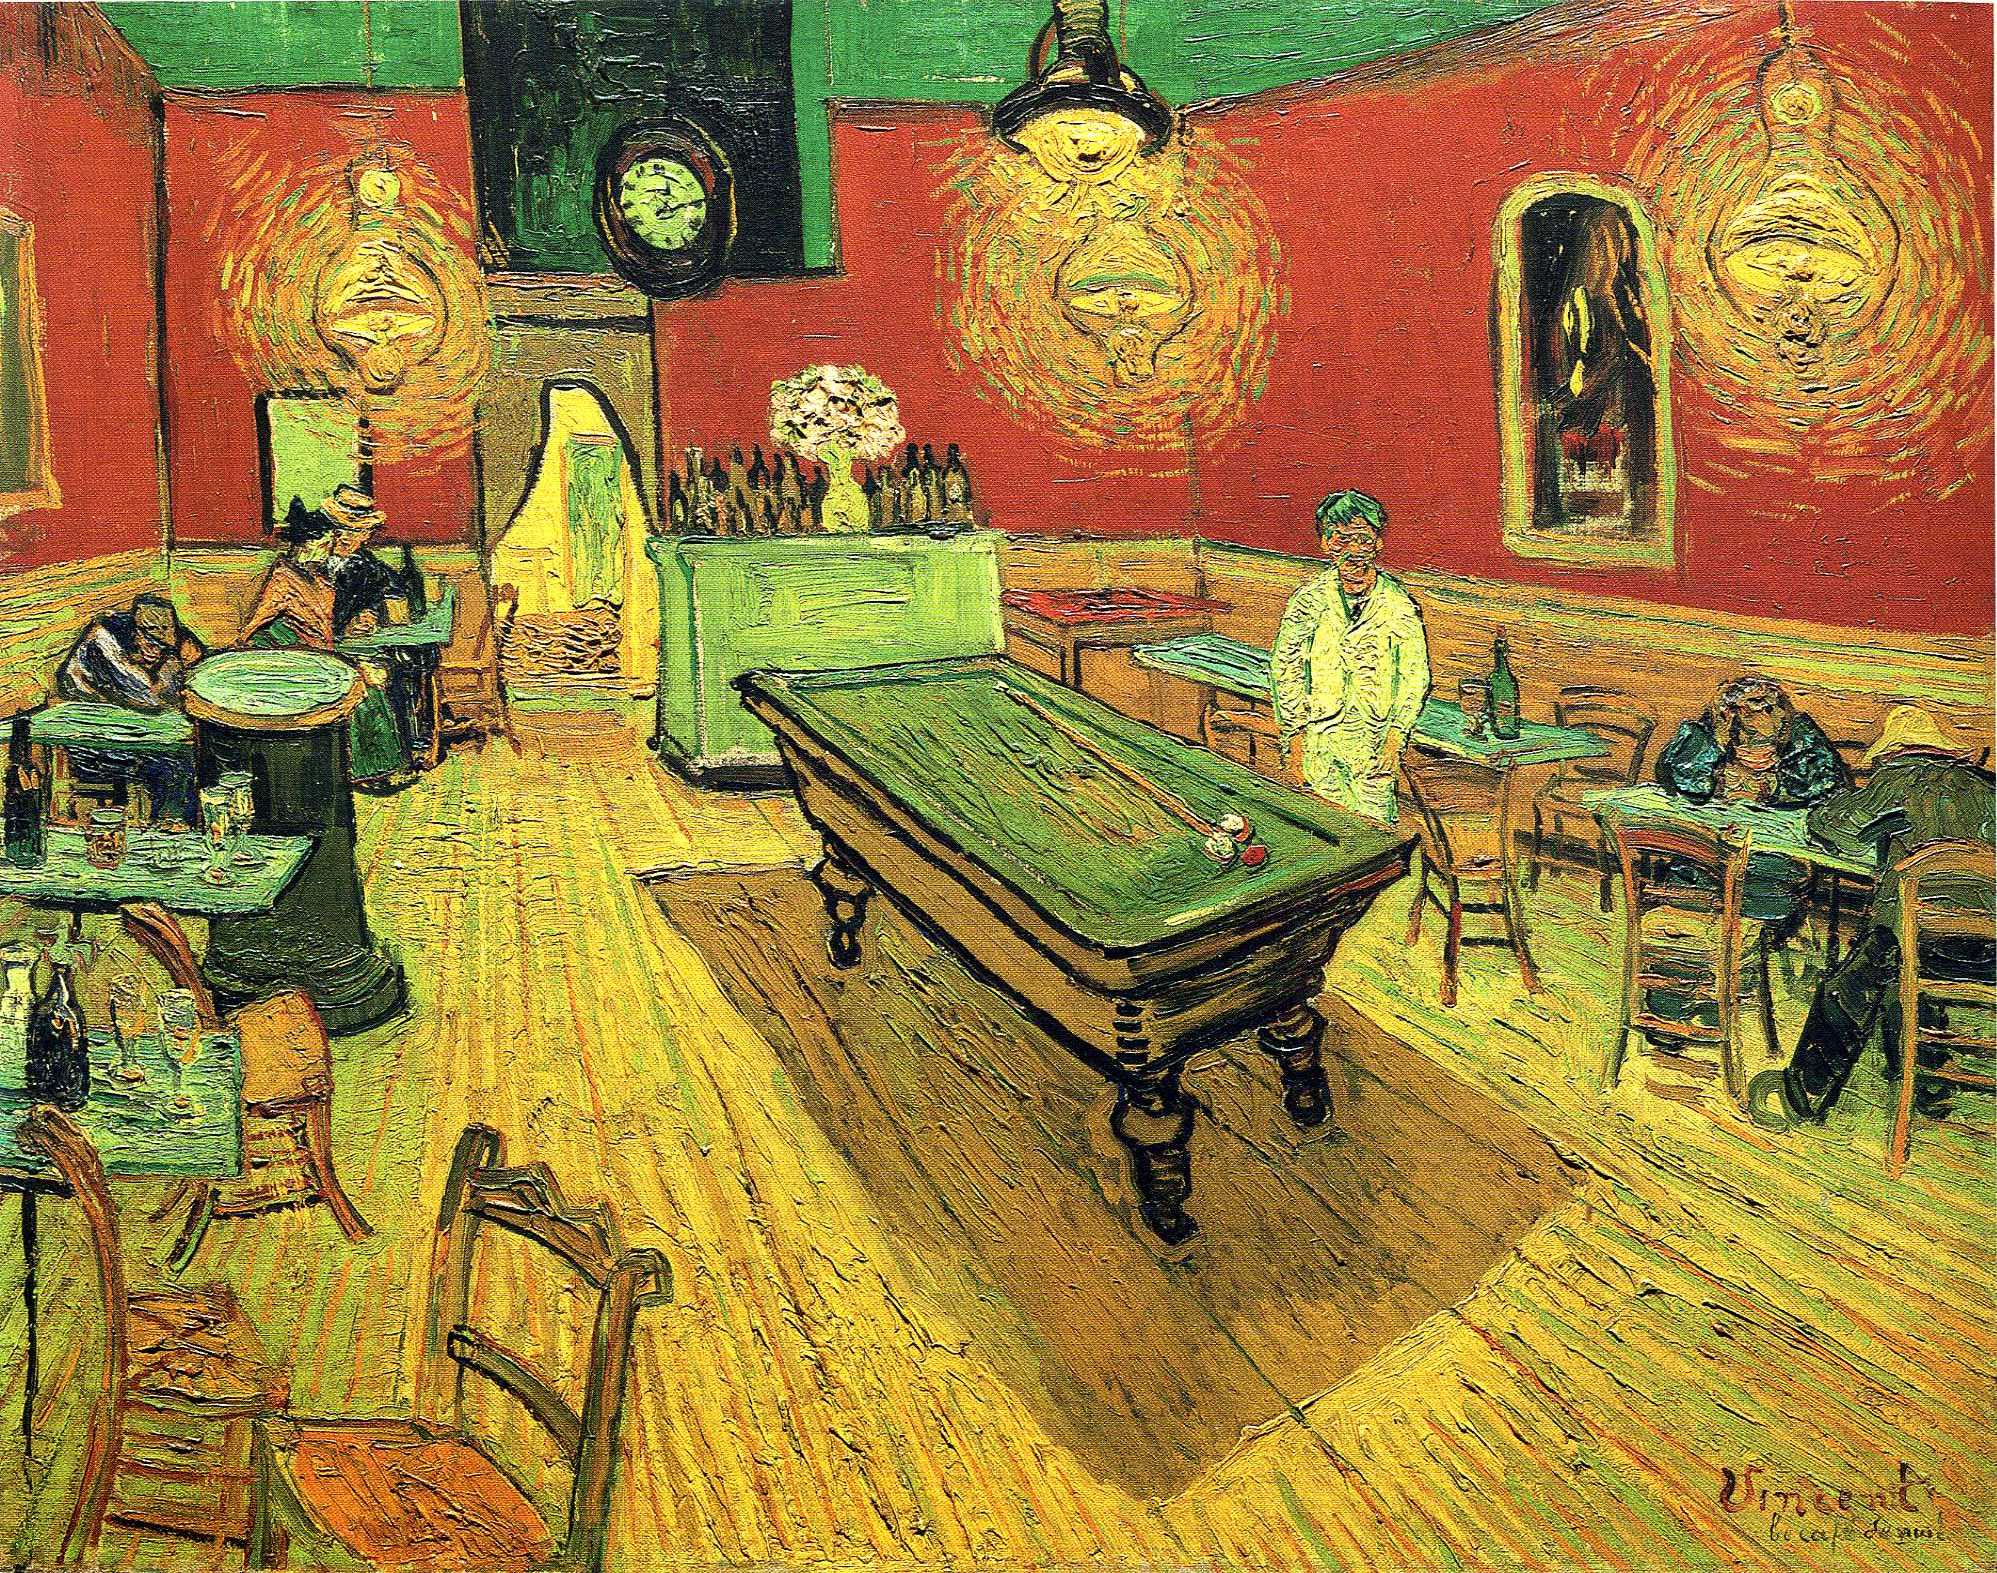 The Night Cafe (1888) by Vincent van Gogh. As reproduced in Art in Time